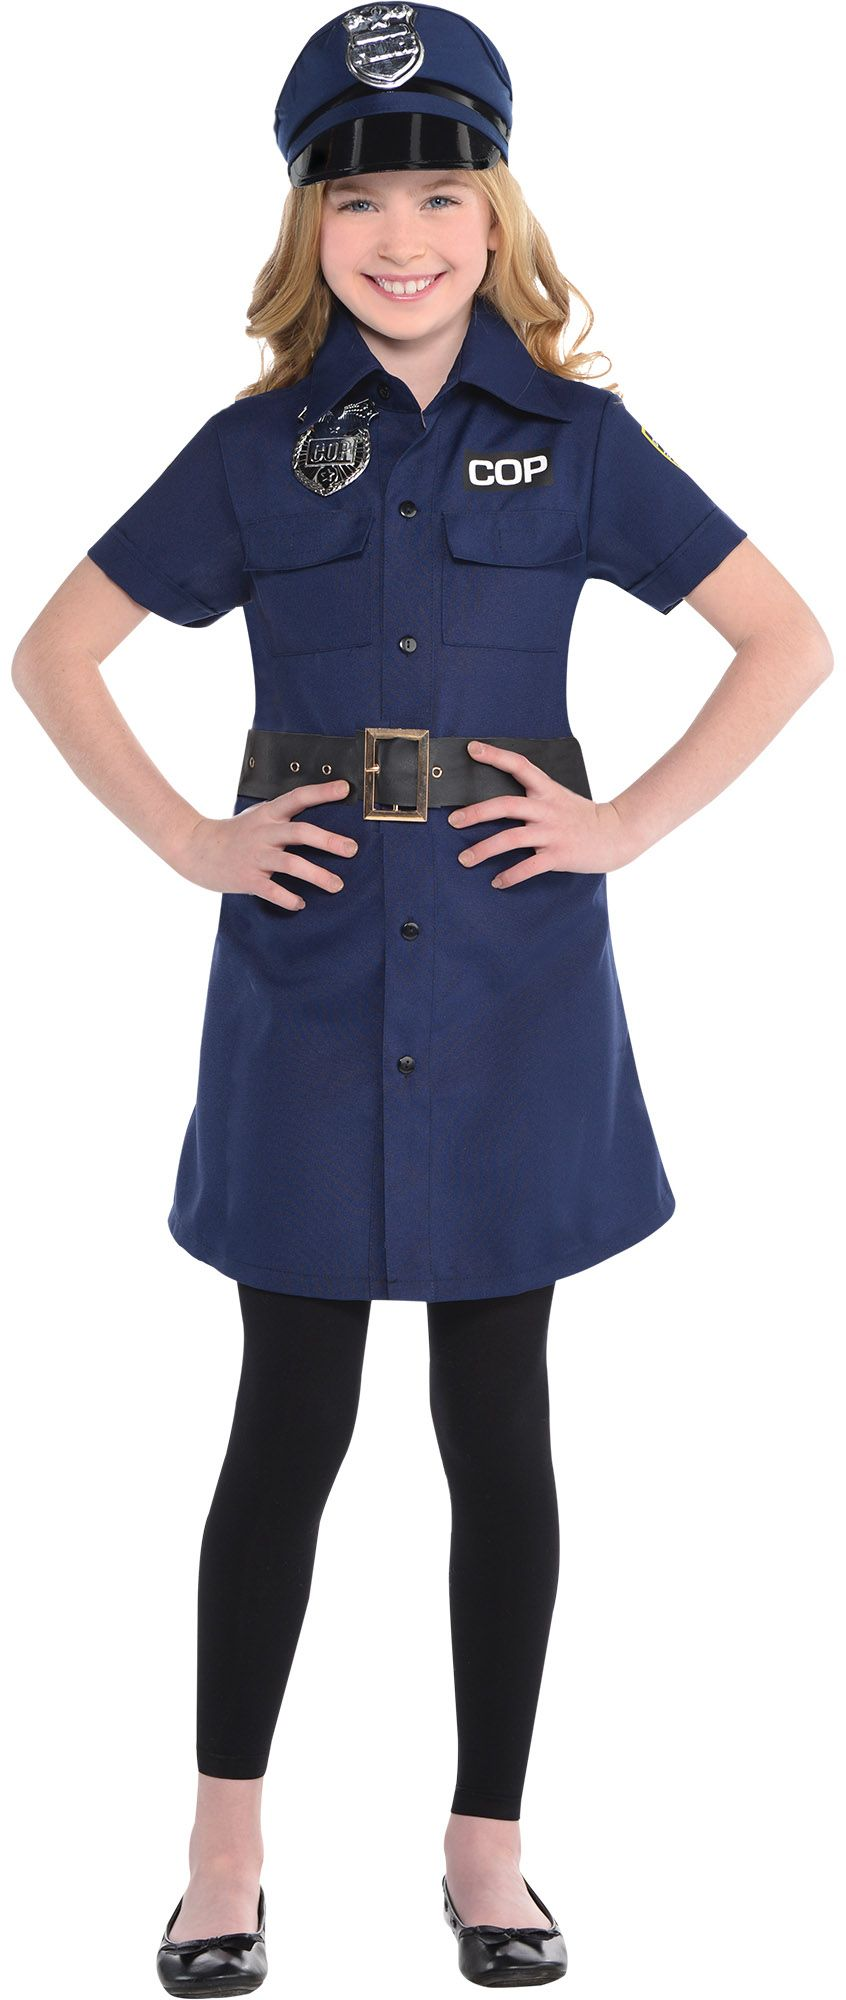 girl police create your look - Girls Cop Halloween Costume